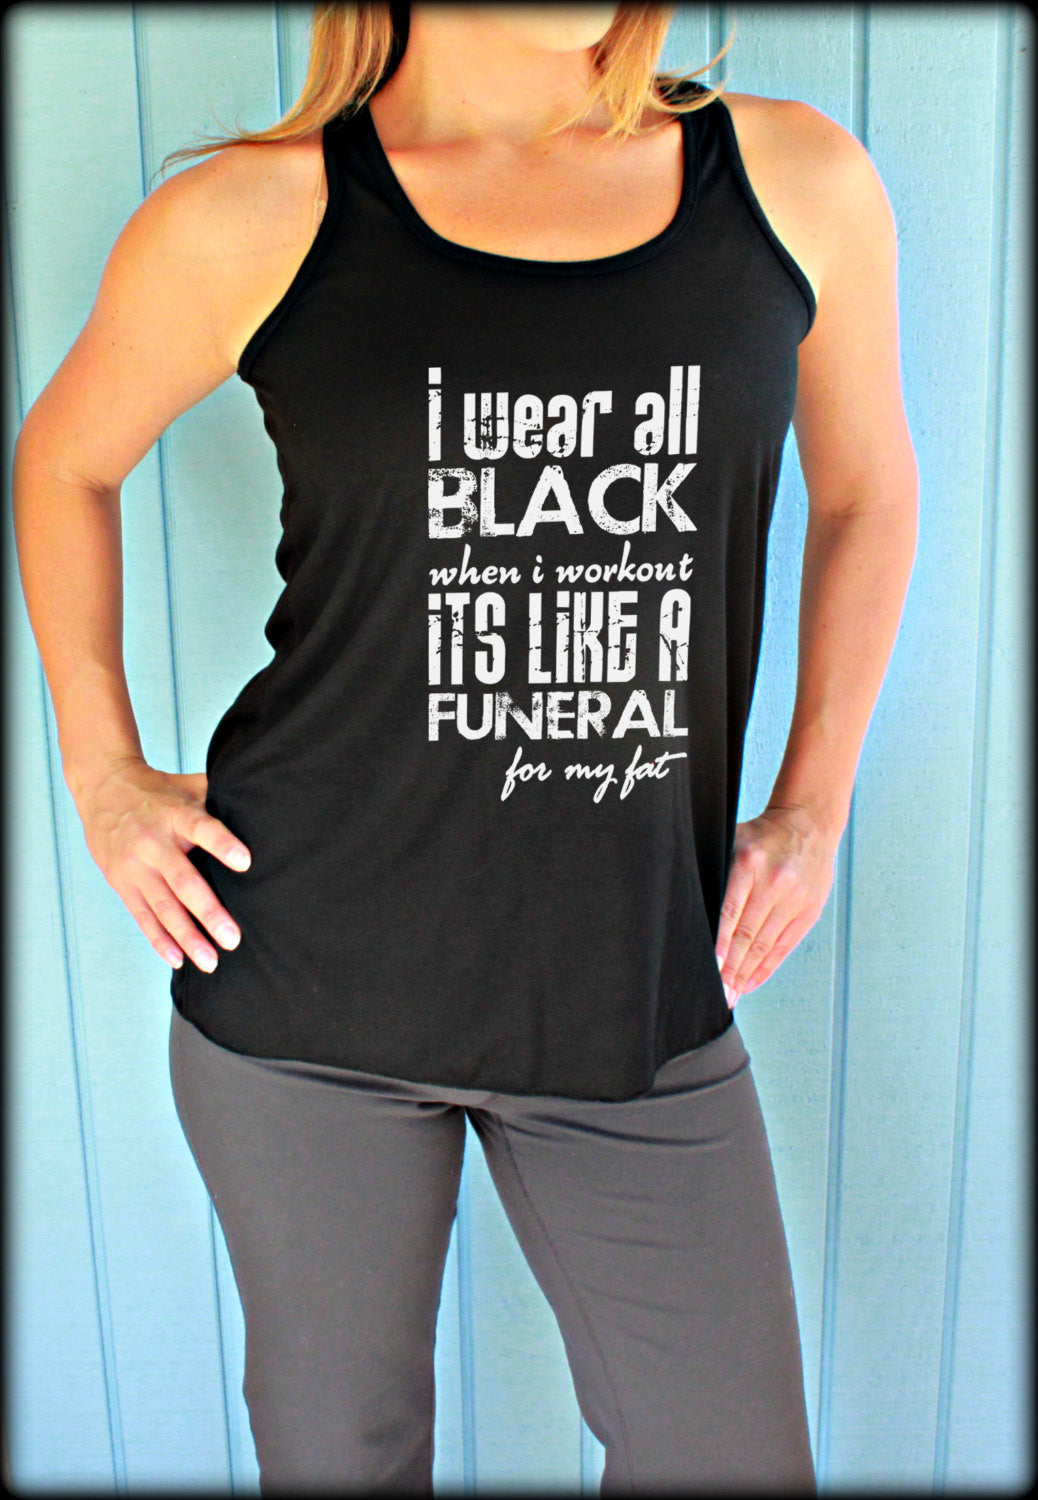 Flowy Workout Tank Top. I Wear All Black When I Workout. Motivational Workout Tank. Fitness Inspiration. Running Tank.